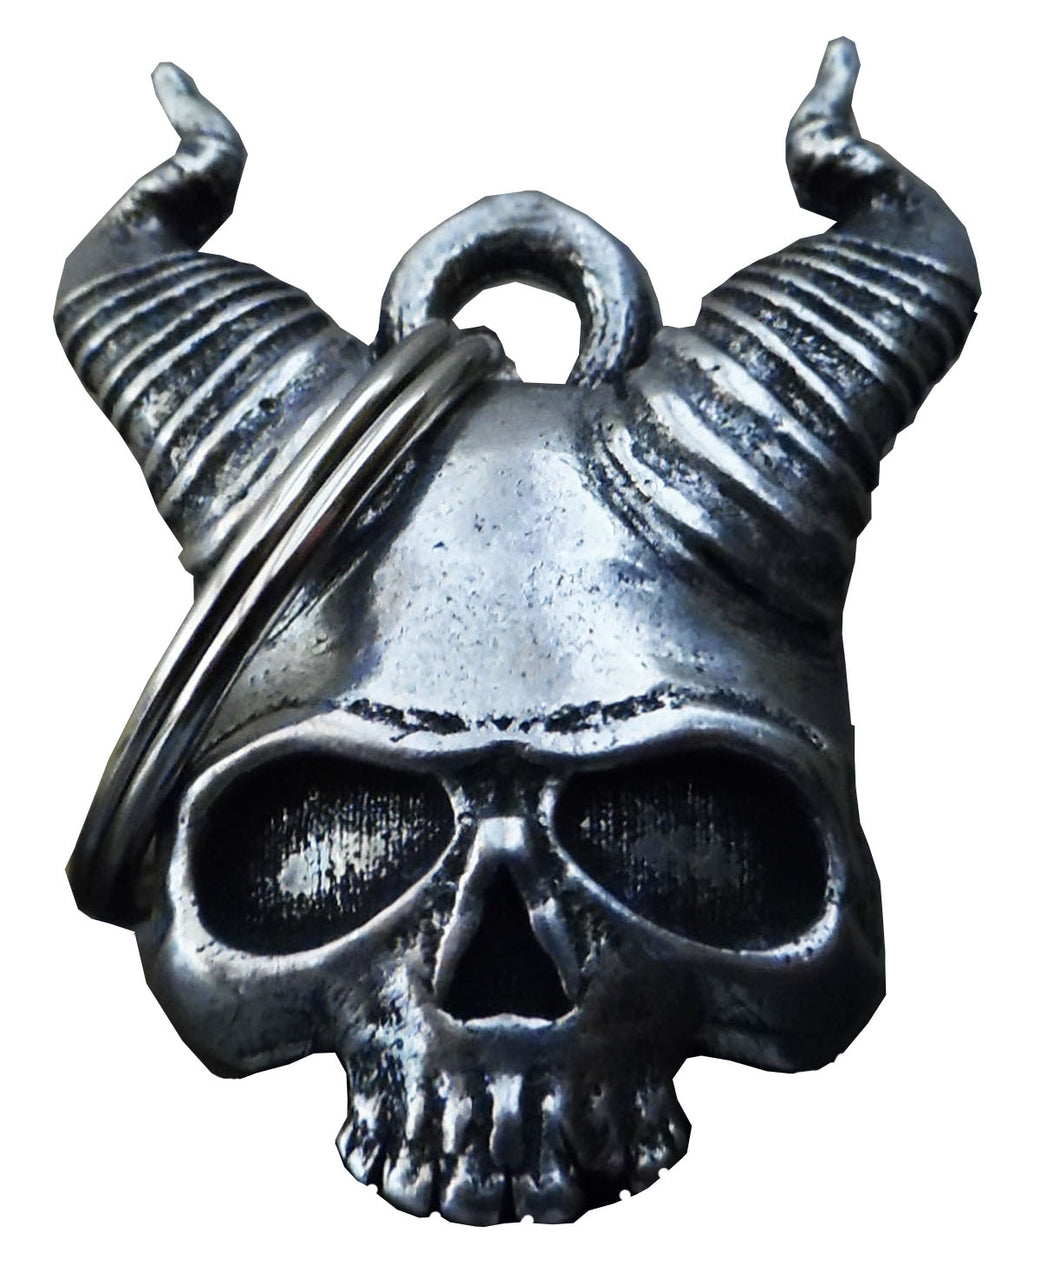 3D Hell Skull Bell Guardian Angel Gremlin, Lifestyle Accessories - Fat Skeleton UK